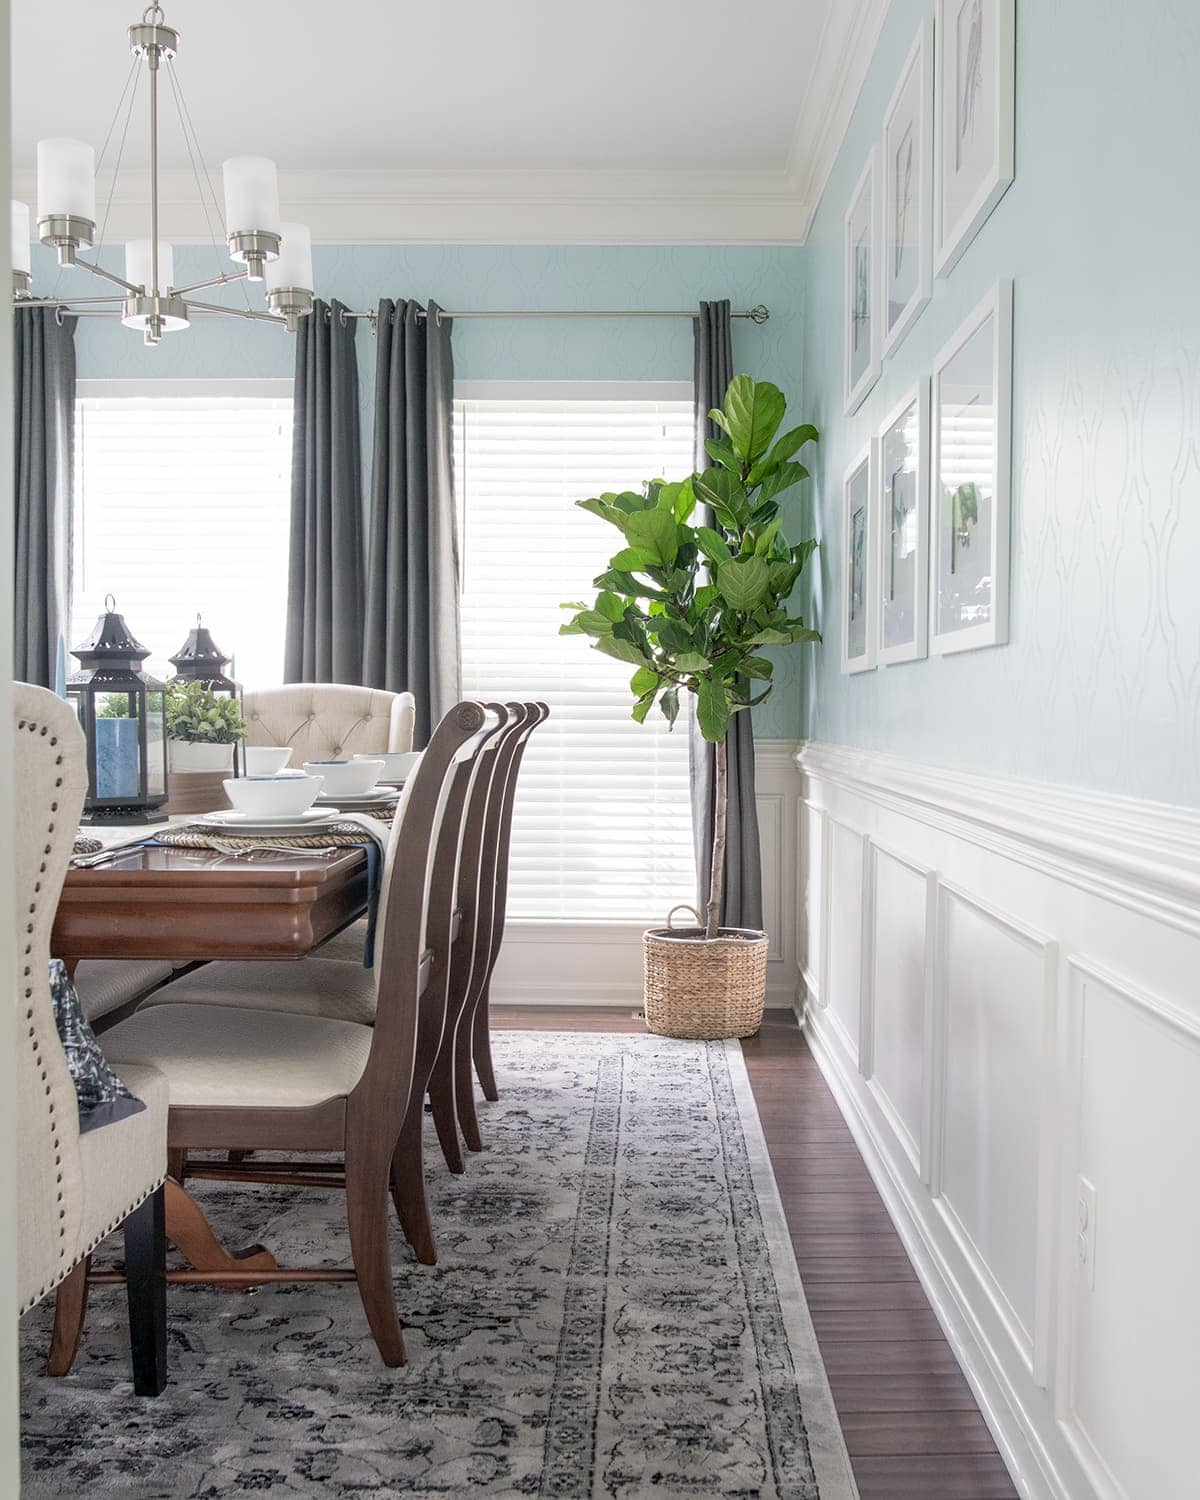 Side view of classic chic dining room. Soft blue walls with white wainscoting, potted plants, neutral rug, and gray curtains.